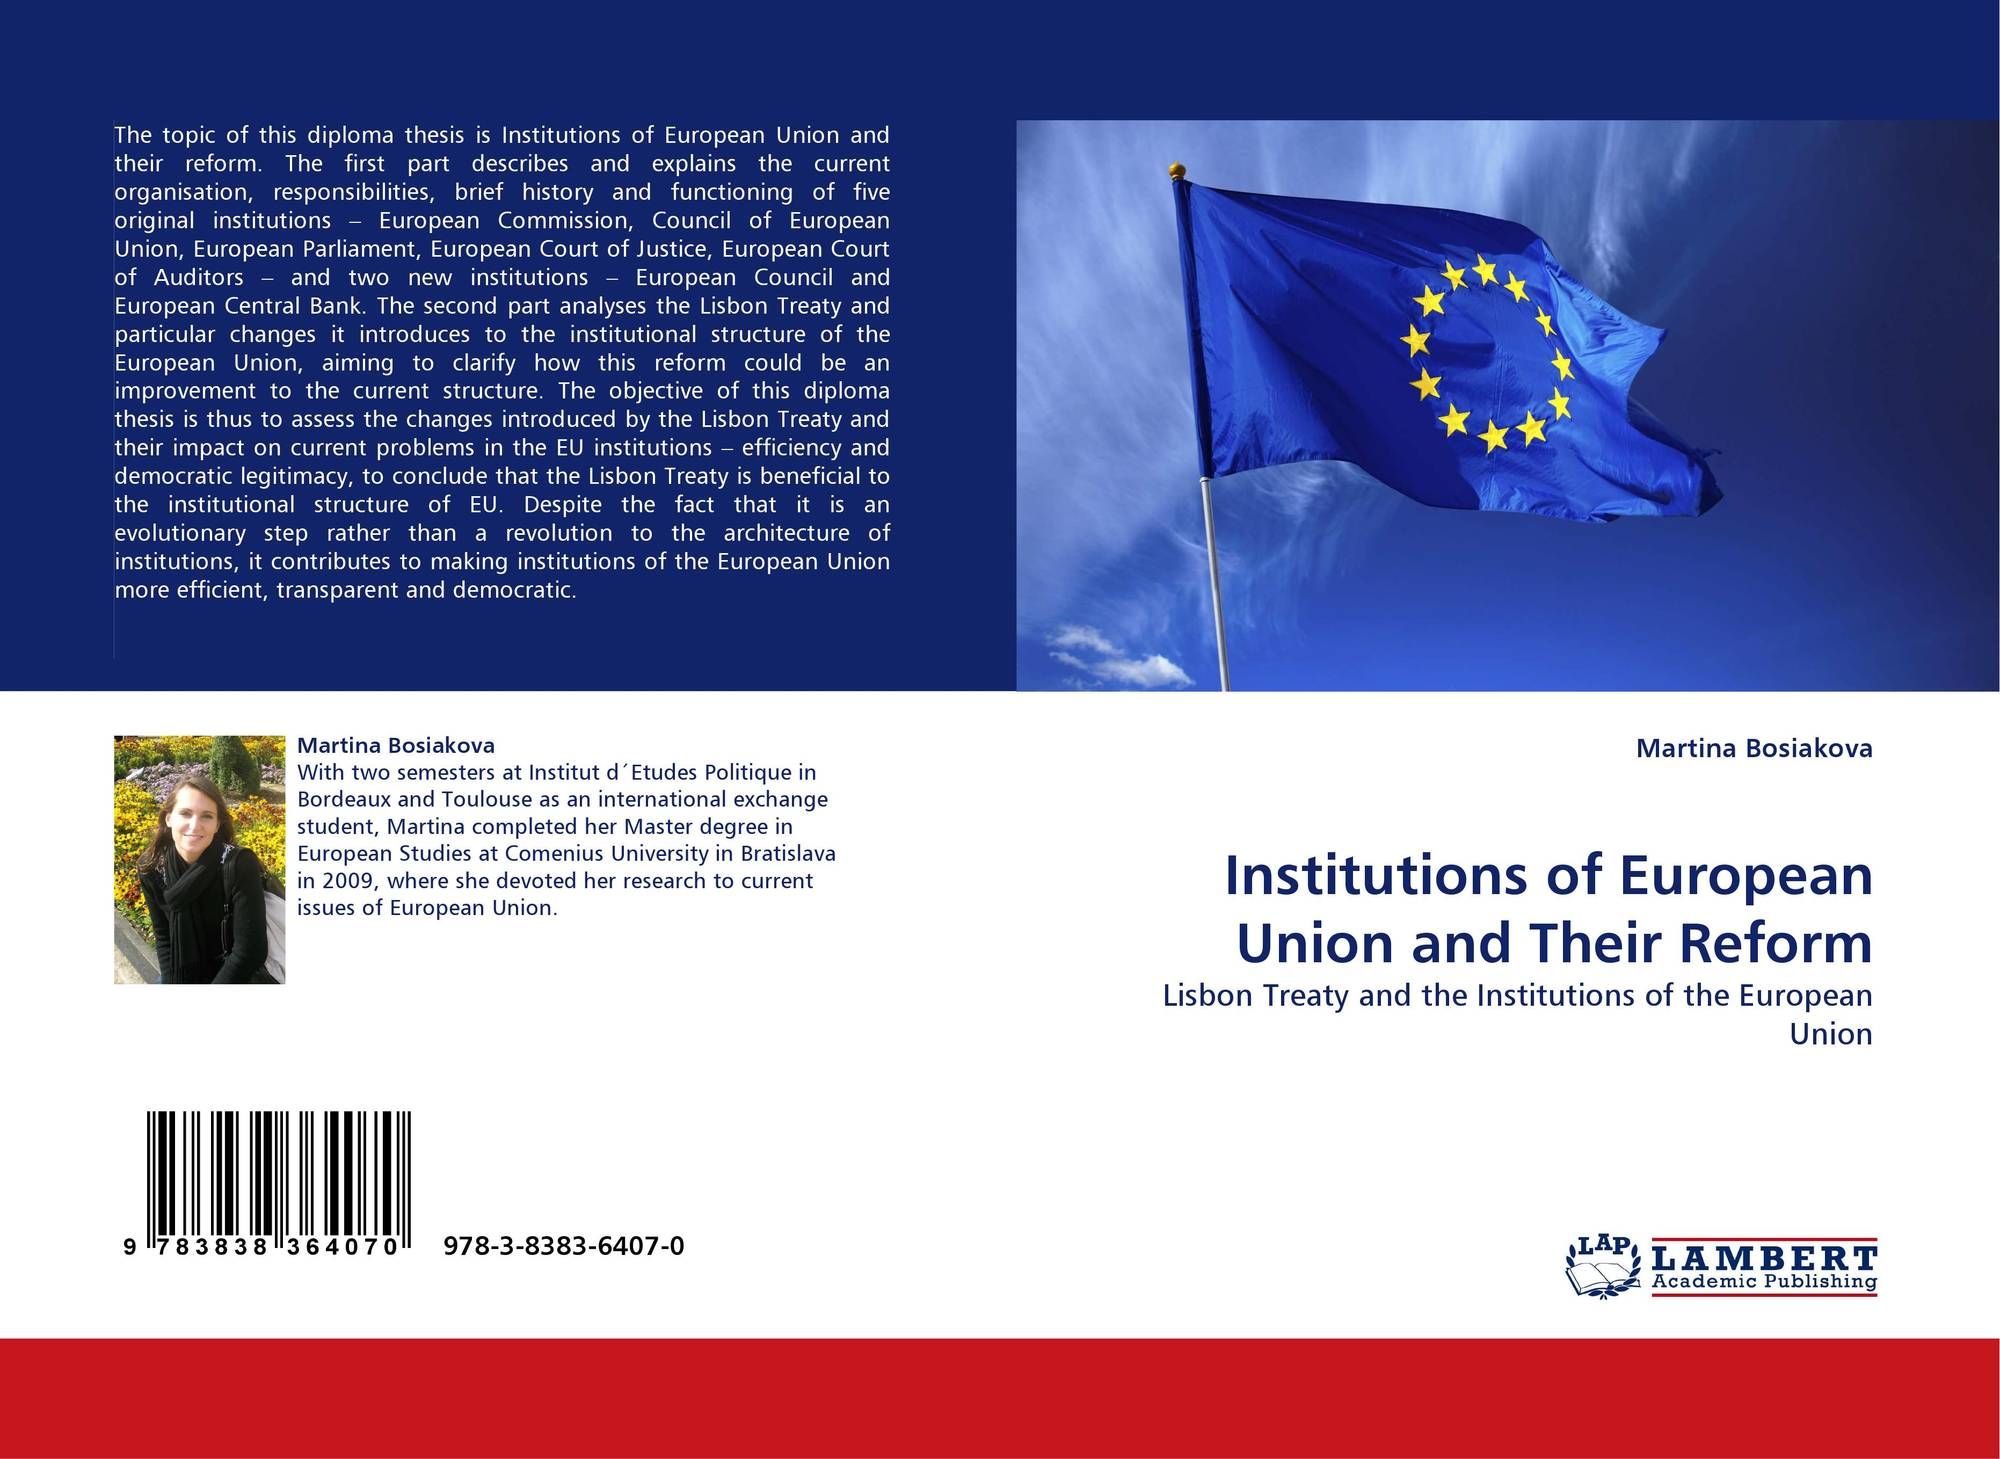 institutions of the european union and The european union (eu) - this was created in 1993 by the treaty of maastricht of 1992 and was a renaming and strengthening of the european originally this institution was called the european assembly and its members were appointed by the governments of the member states from the.